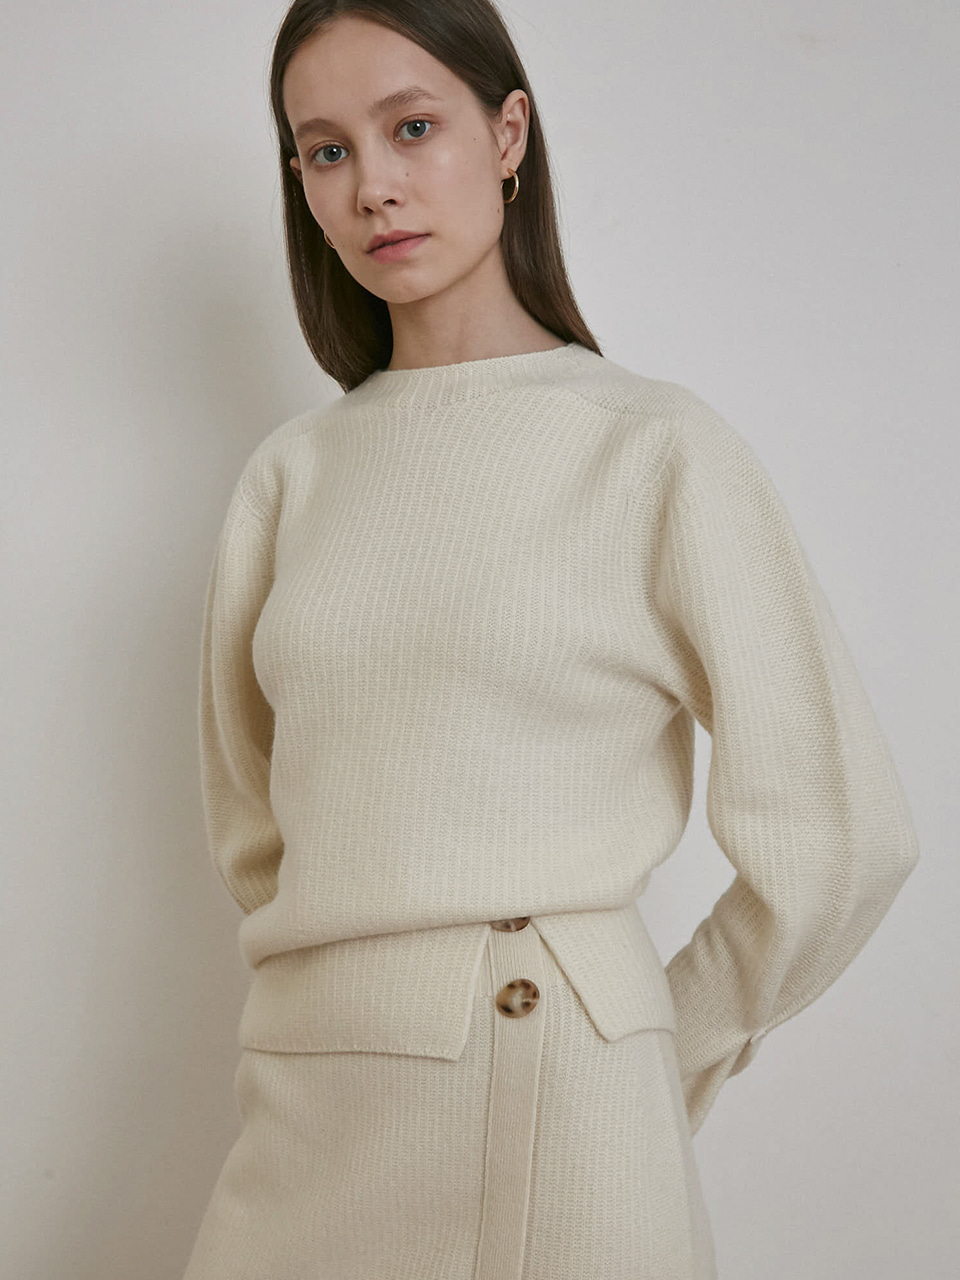 ⓗ CASHMERE SLIT DETAILED KNIT TOP [BLACK][IVORY]